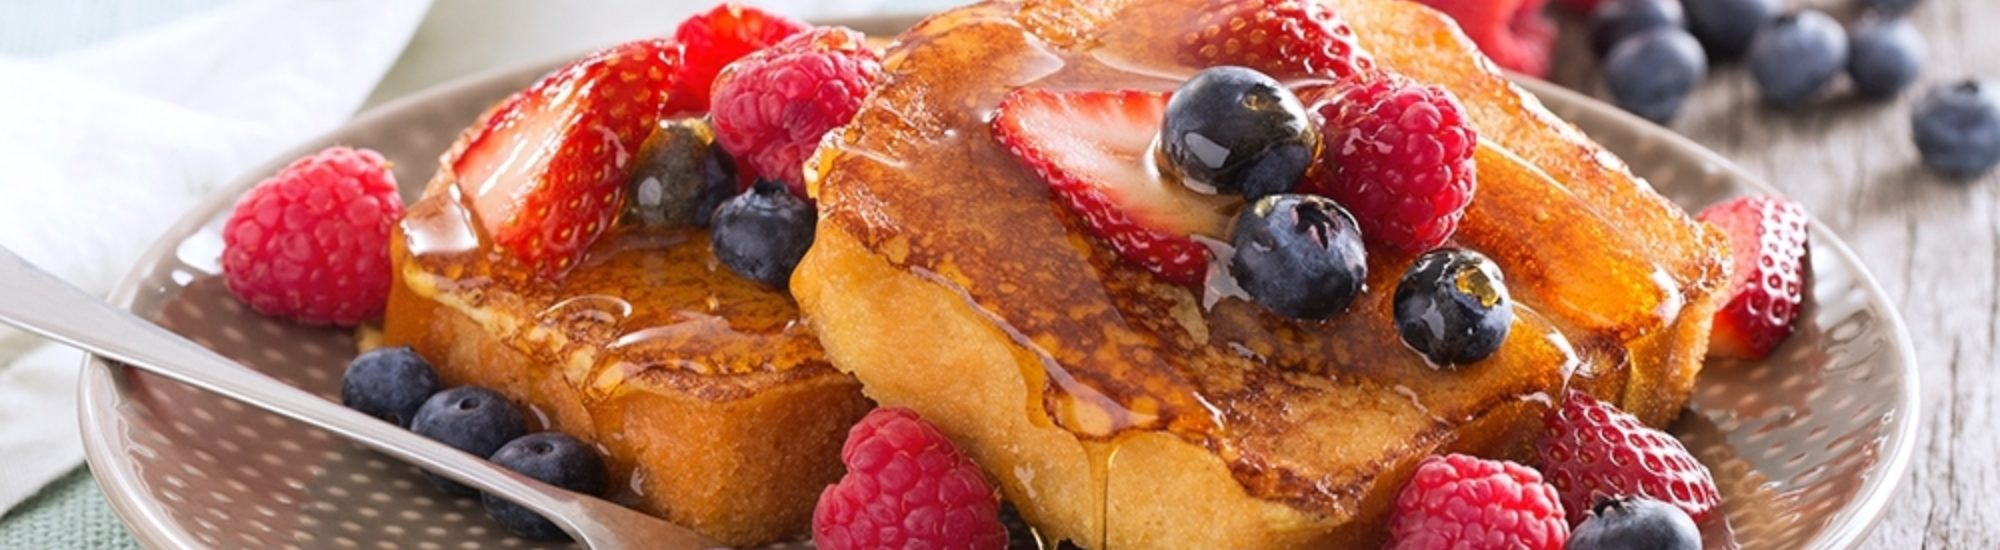 Honey Leches French Toast Banner Image2